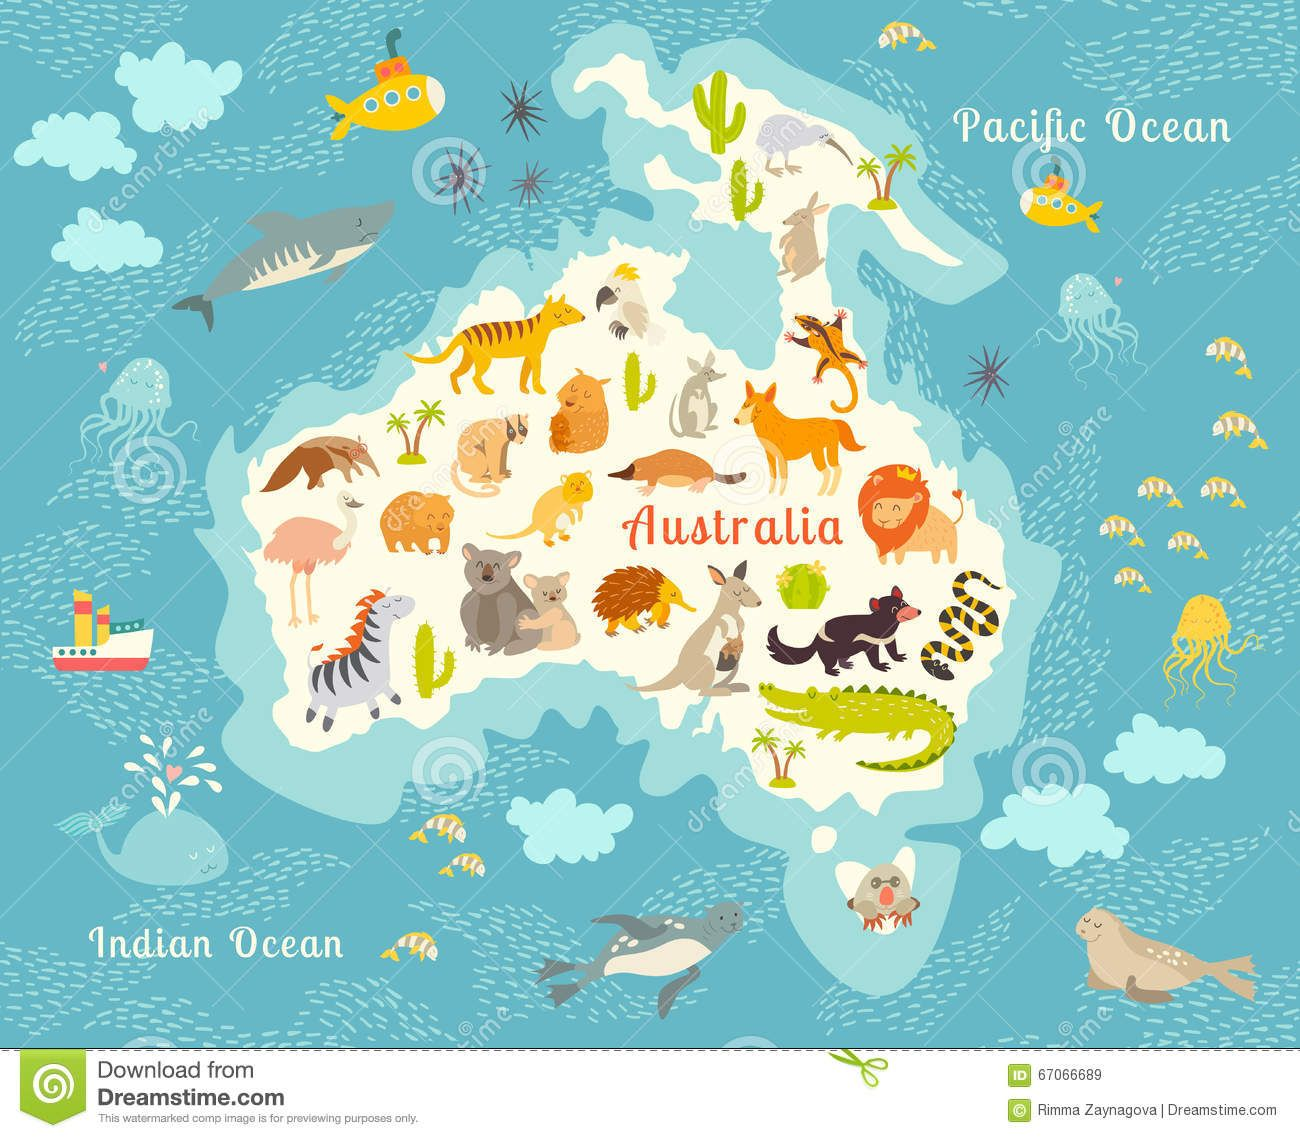 animals world map australia download from over 45 million high quality stock photos